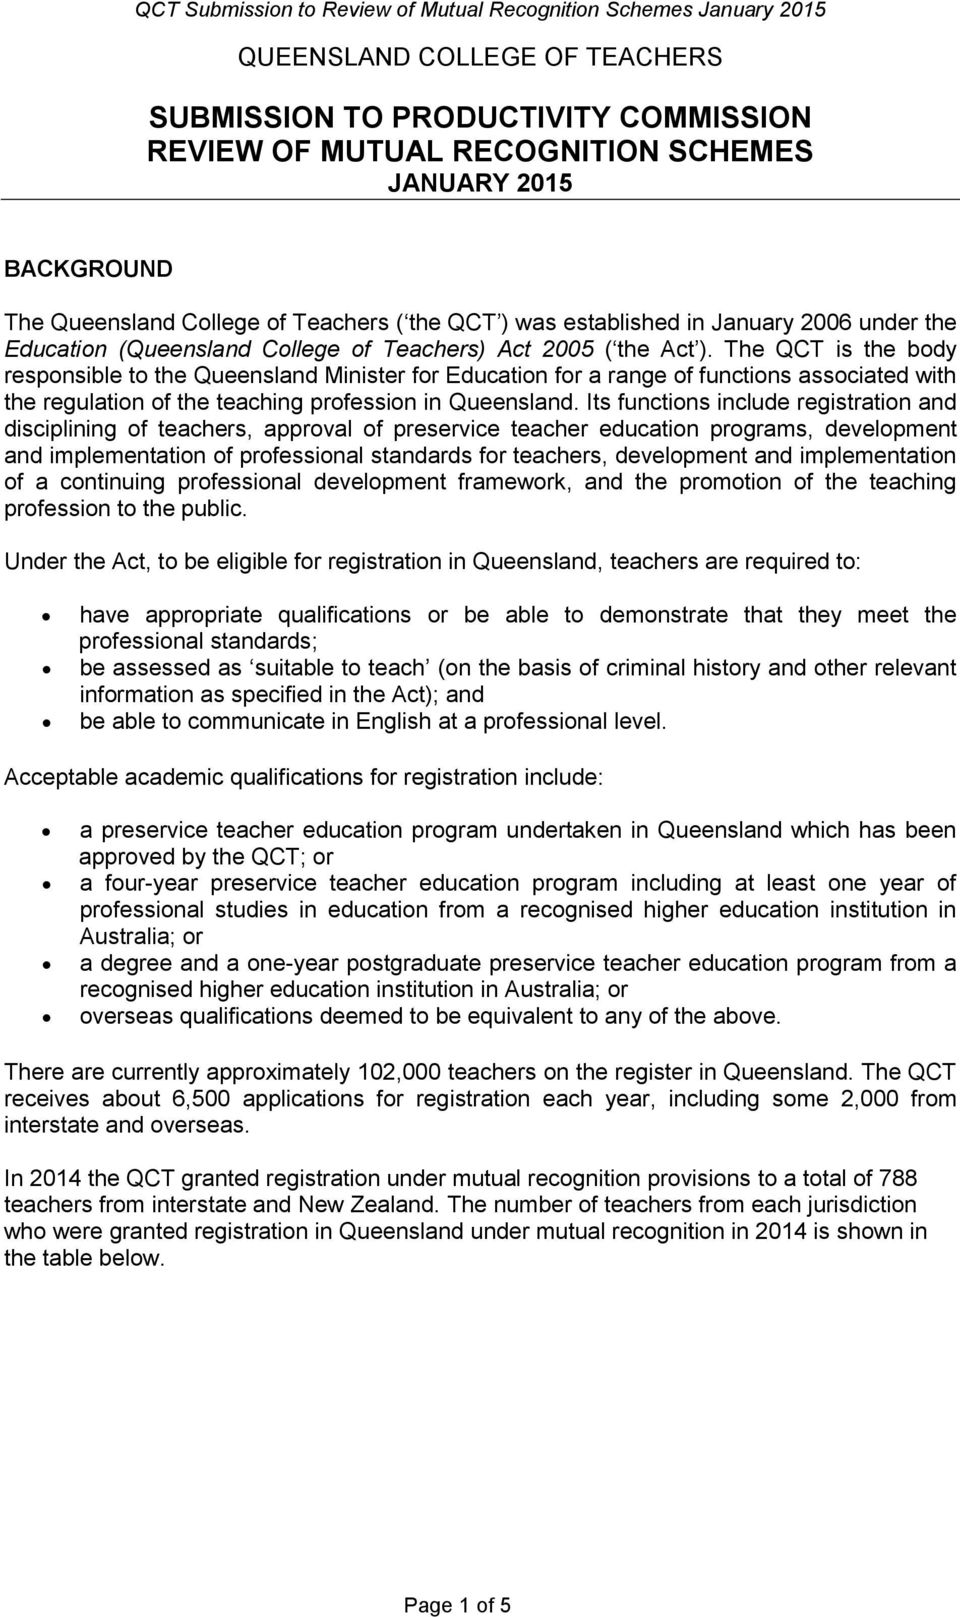 The QCT is the body responsible to the Queensland Minister for Education for a range of functions associated with the regulation of the teaching profession in Queensland.